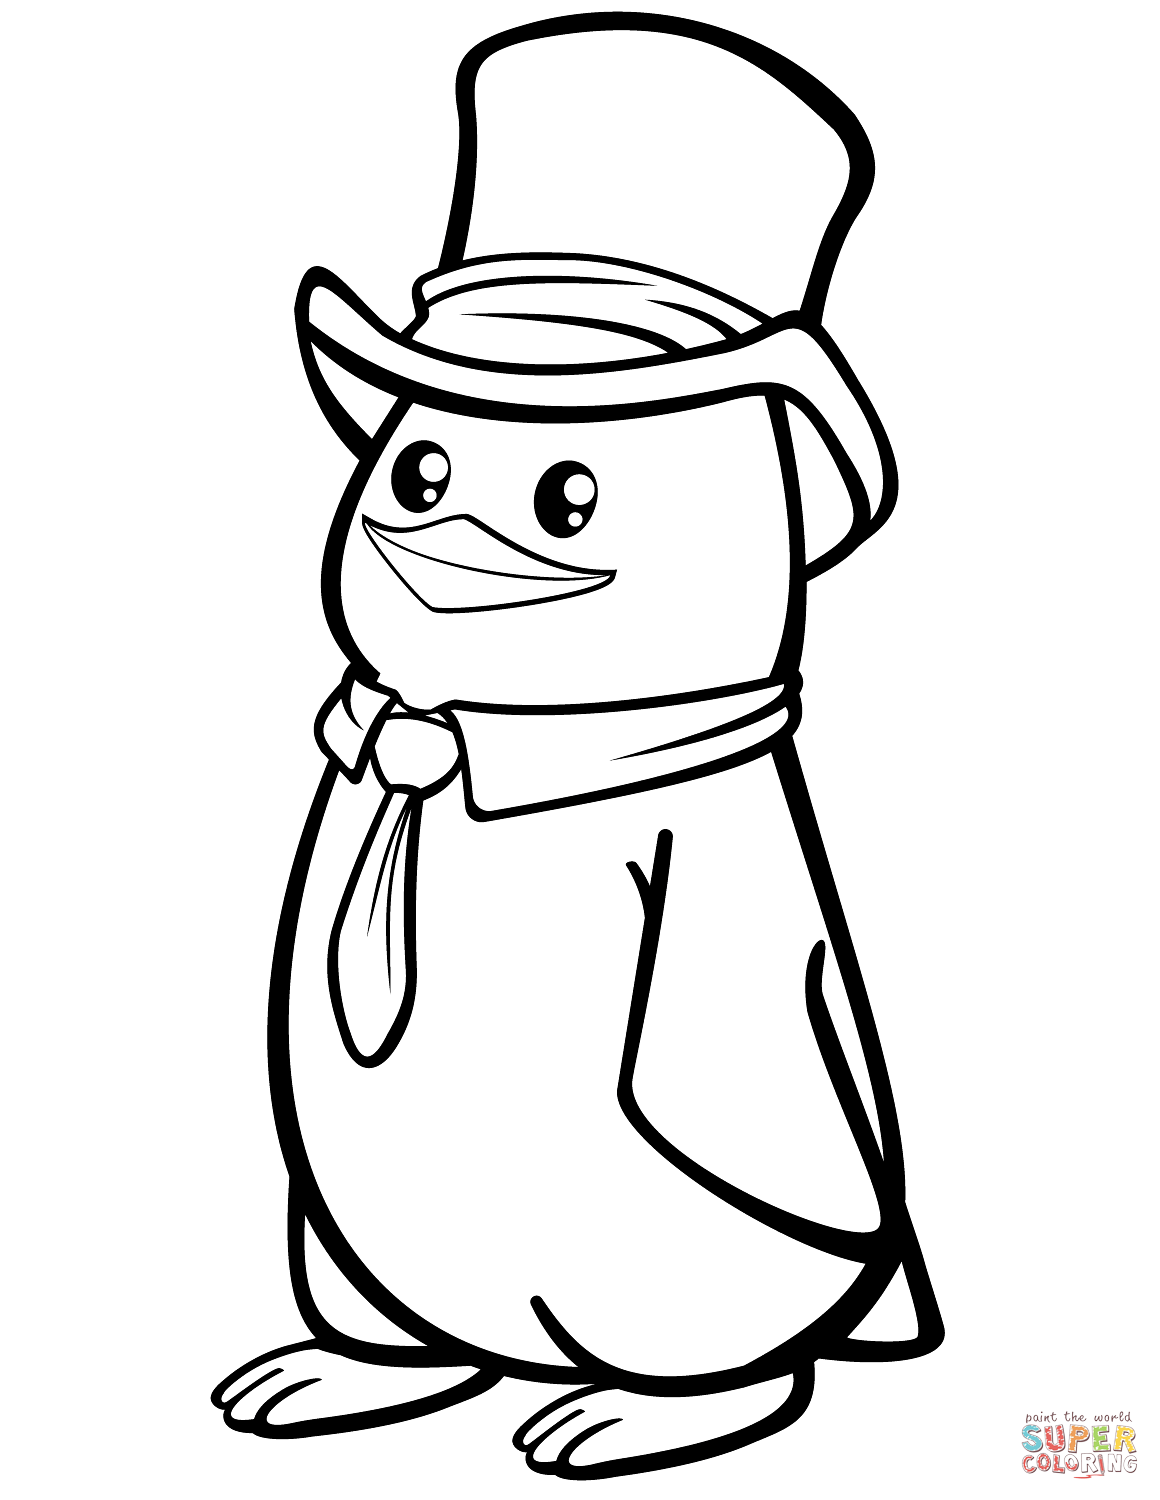 coloring page of penguin get this cute penguin coloring pages 47859 page coloring of penguin